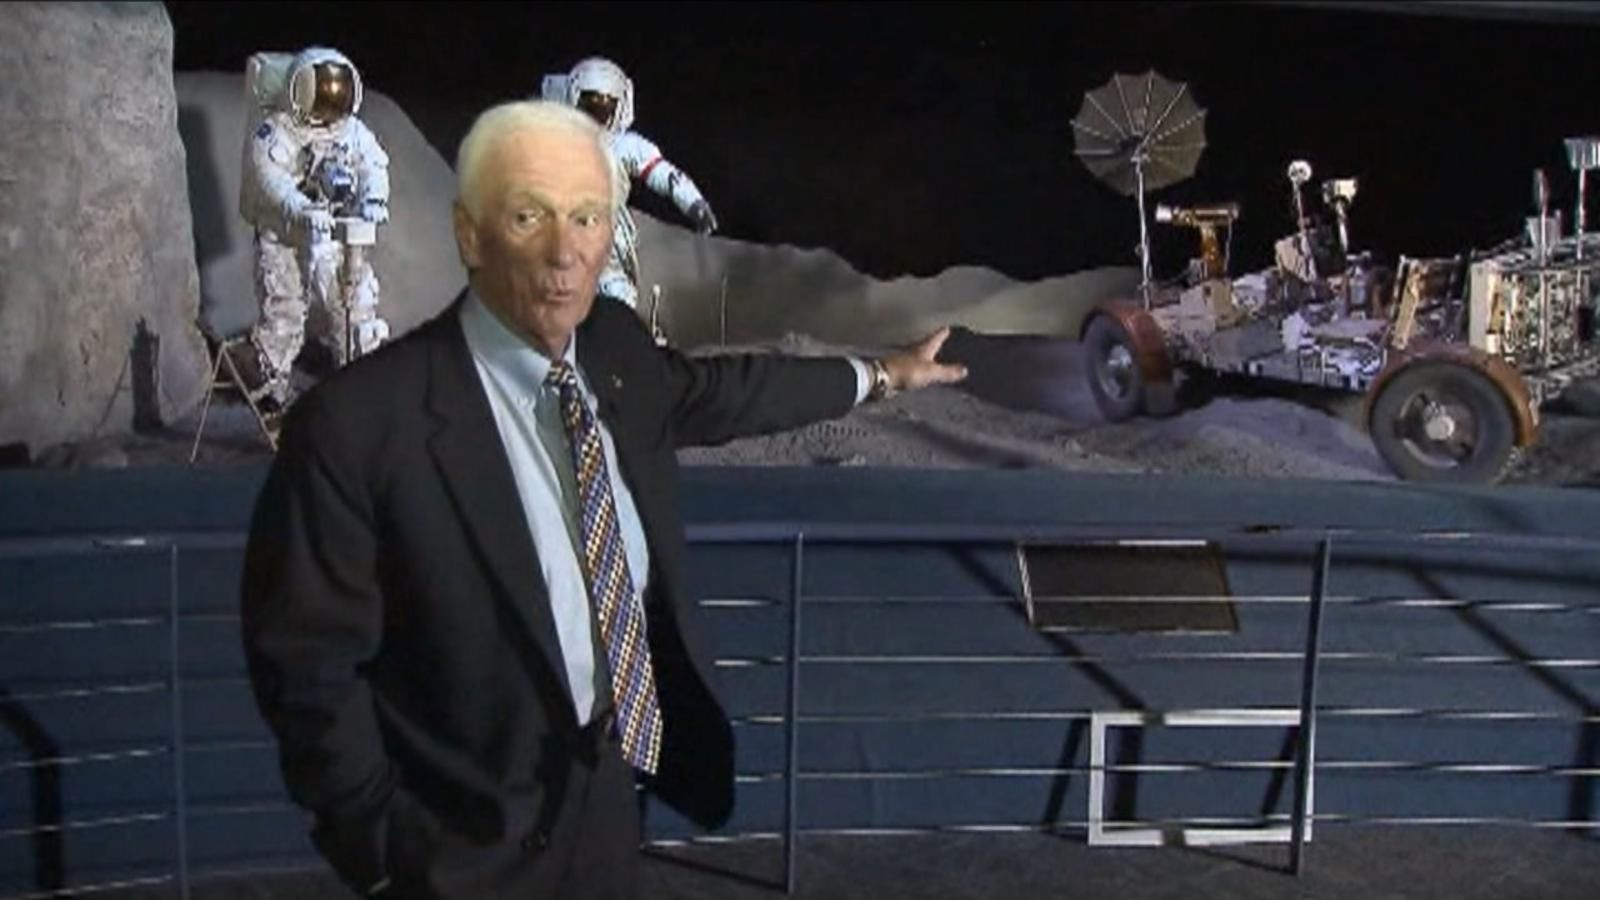 Former astronaut Gene Cernan, the last person to walk on the moon, has died at age 82.